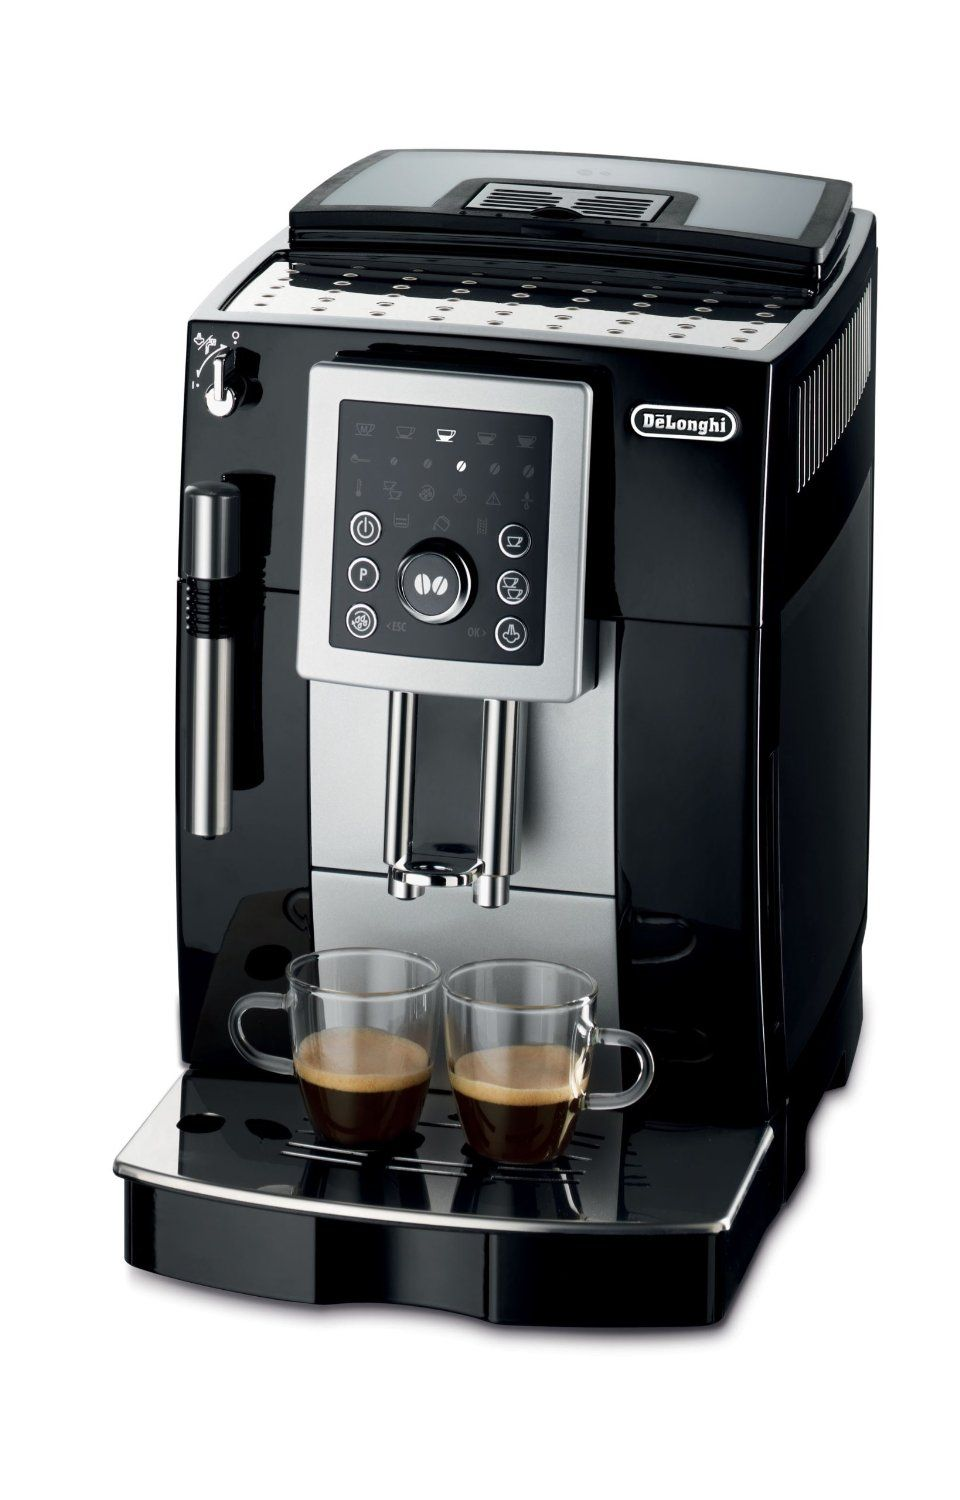 DeLonghi ECAM23210B Compact Magnifica S Beverage Center